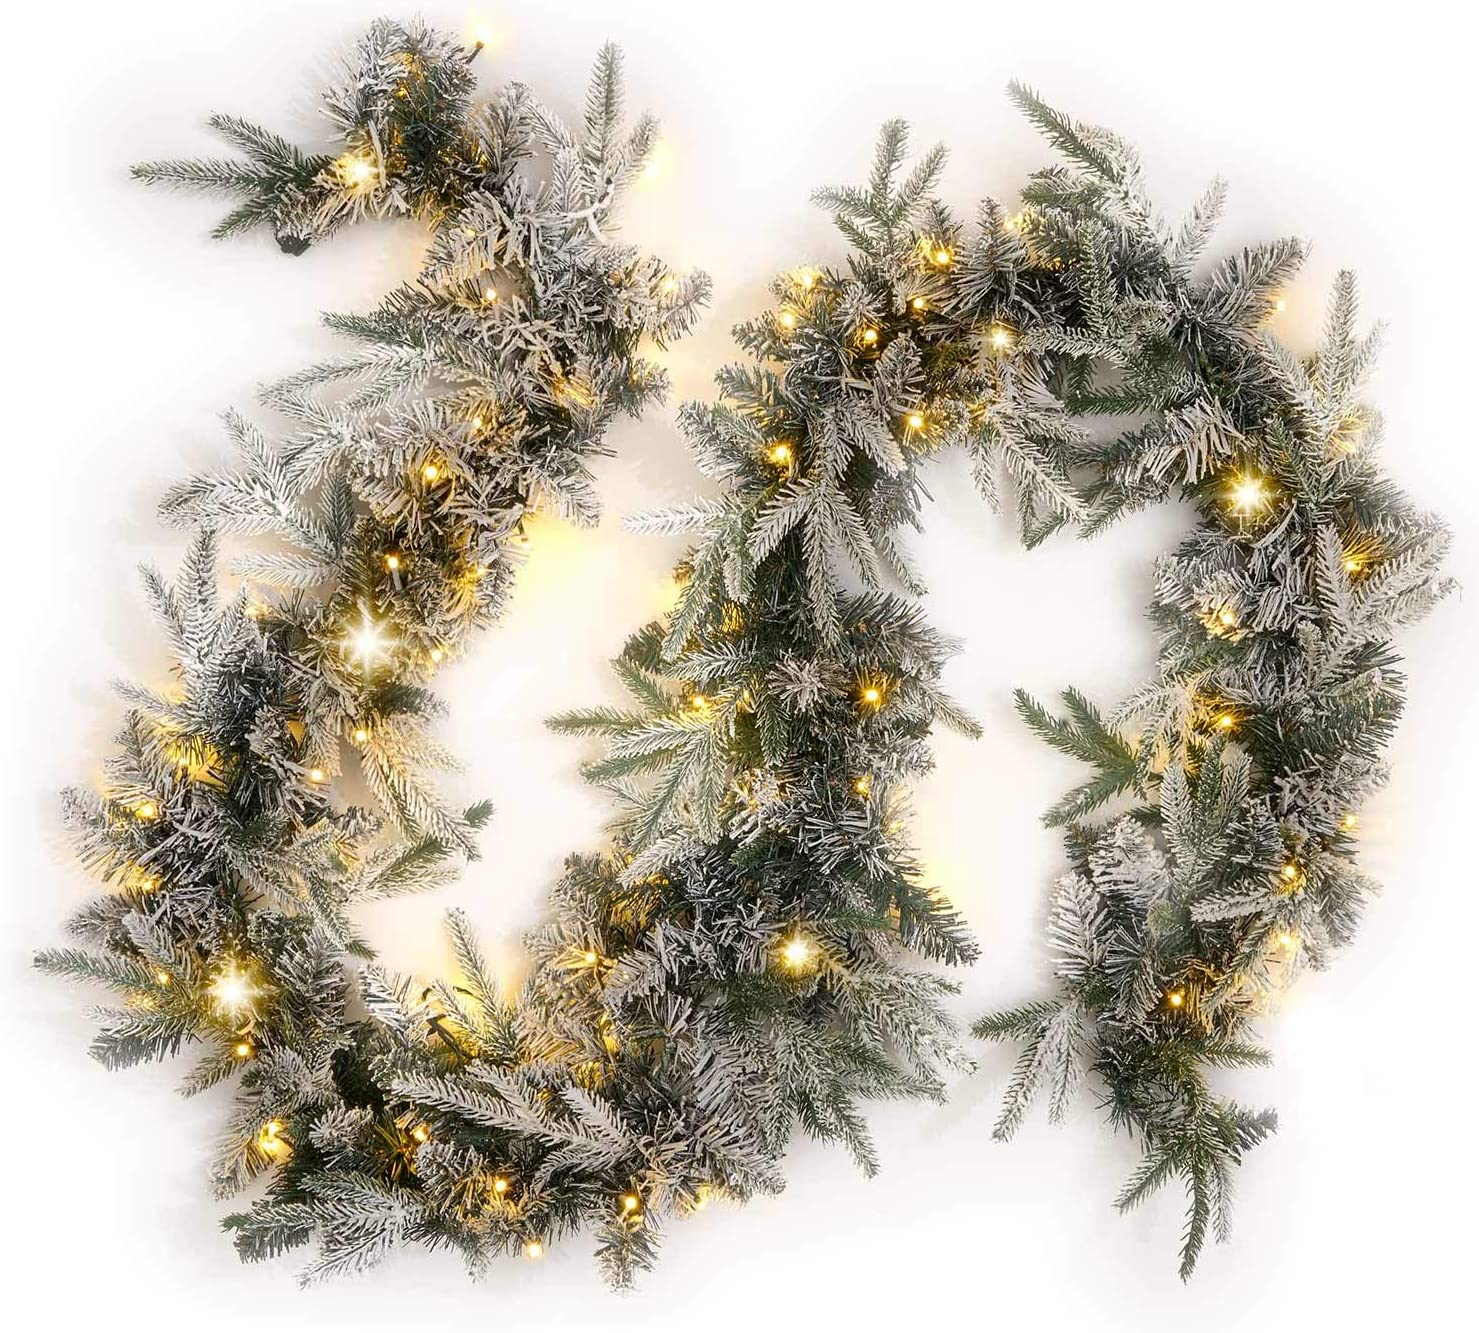 Flocked Christmas Garland with Lights - 9 Ft, Artificial White Pine Garland with 100 Warm White LED Lights, Plug in, Christmas Decorations and Holiday Mantle Decor- Connect Up to 3 Garlands